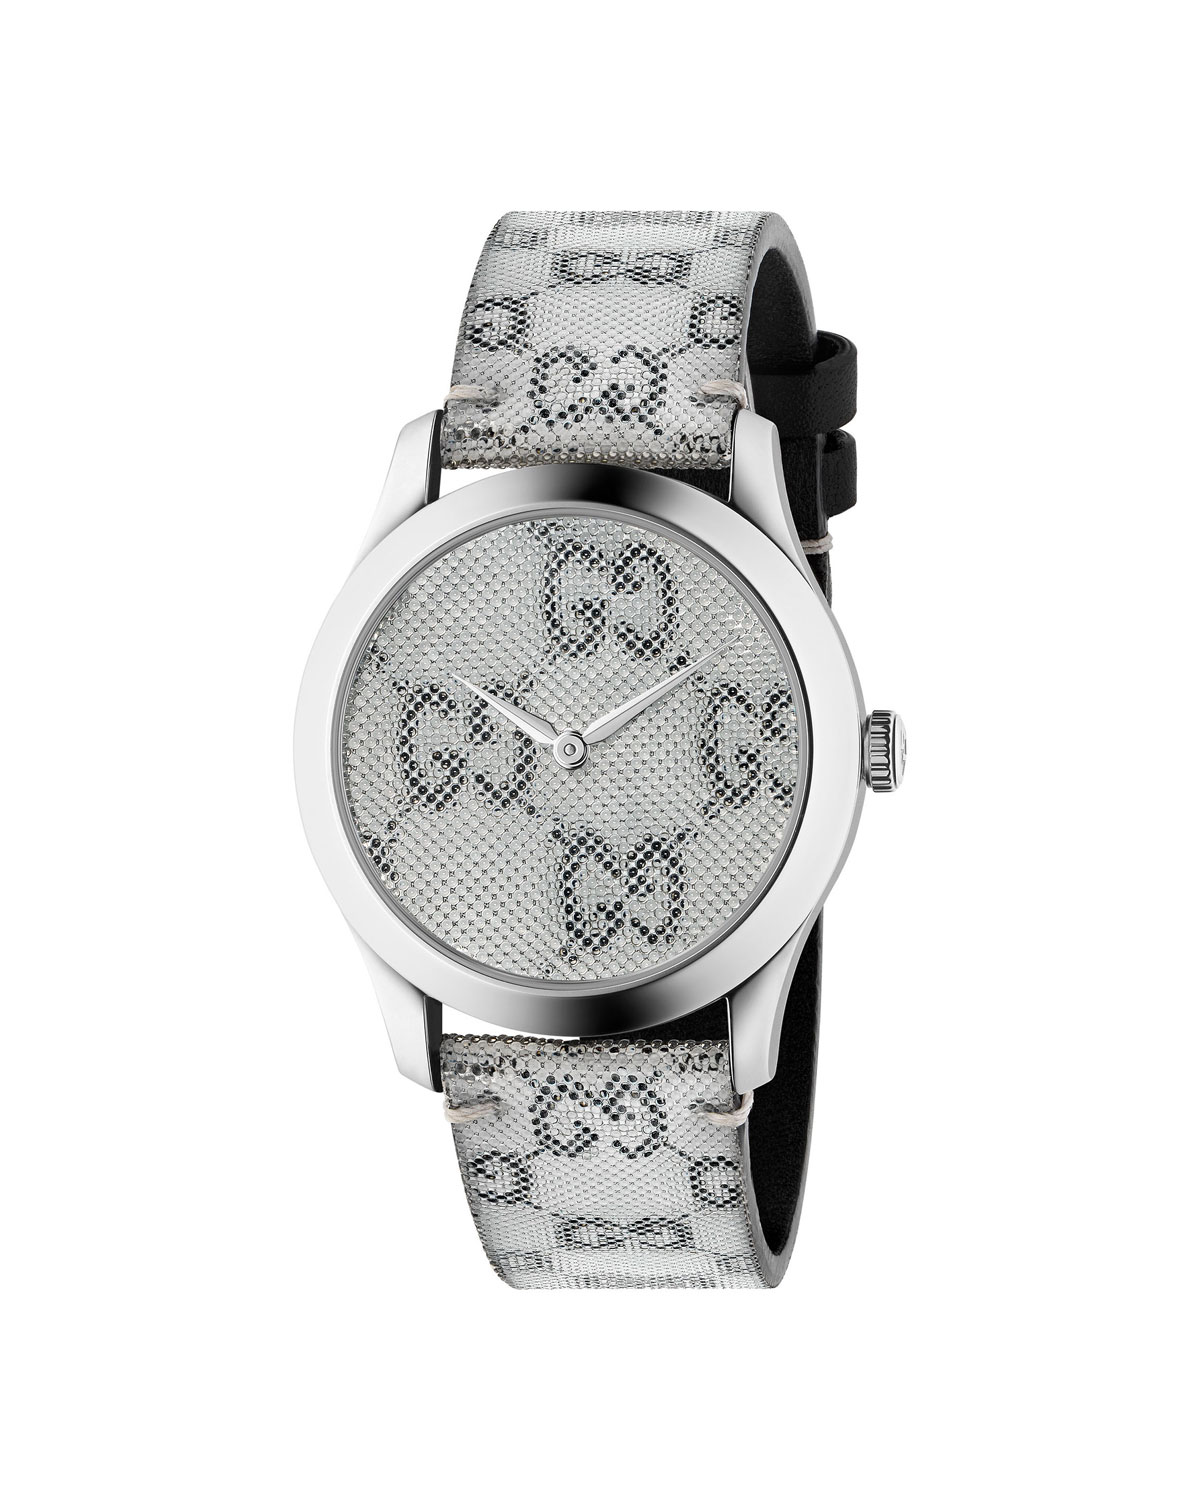 1d28c02c4b1 Gucci Men s GG Floating Dial Watch